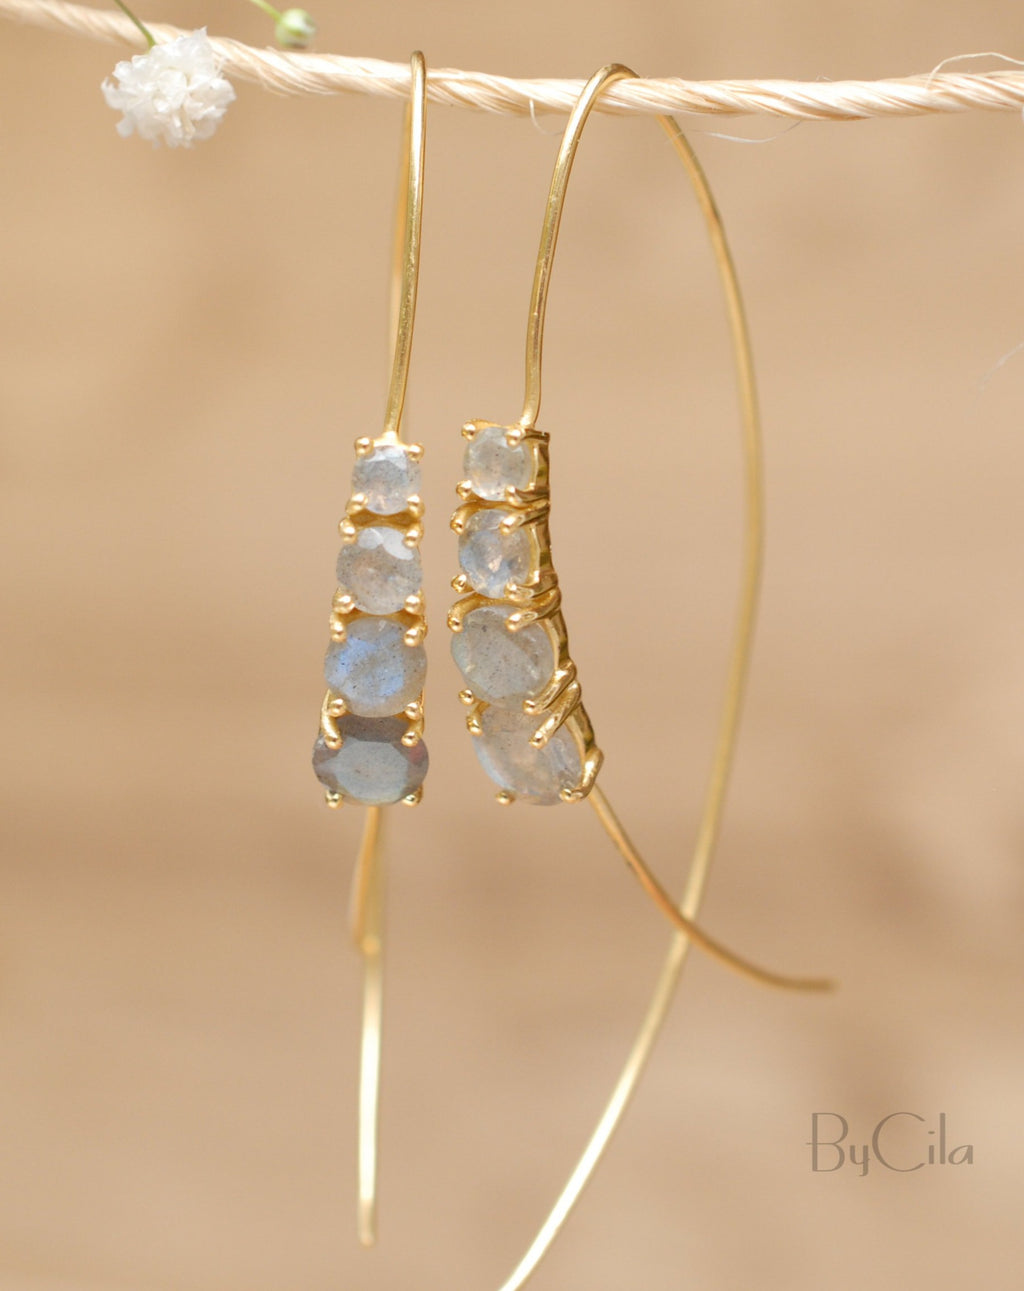 Aja Earrings * Labradorite * Rose Gold, Gold Vermeil or Sterling Silver 925 * BJE044A